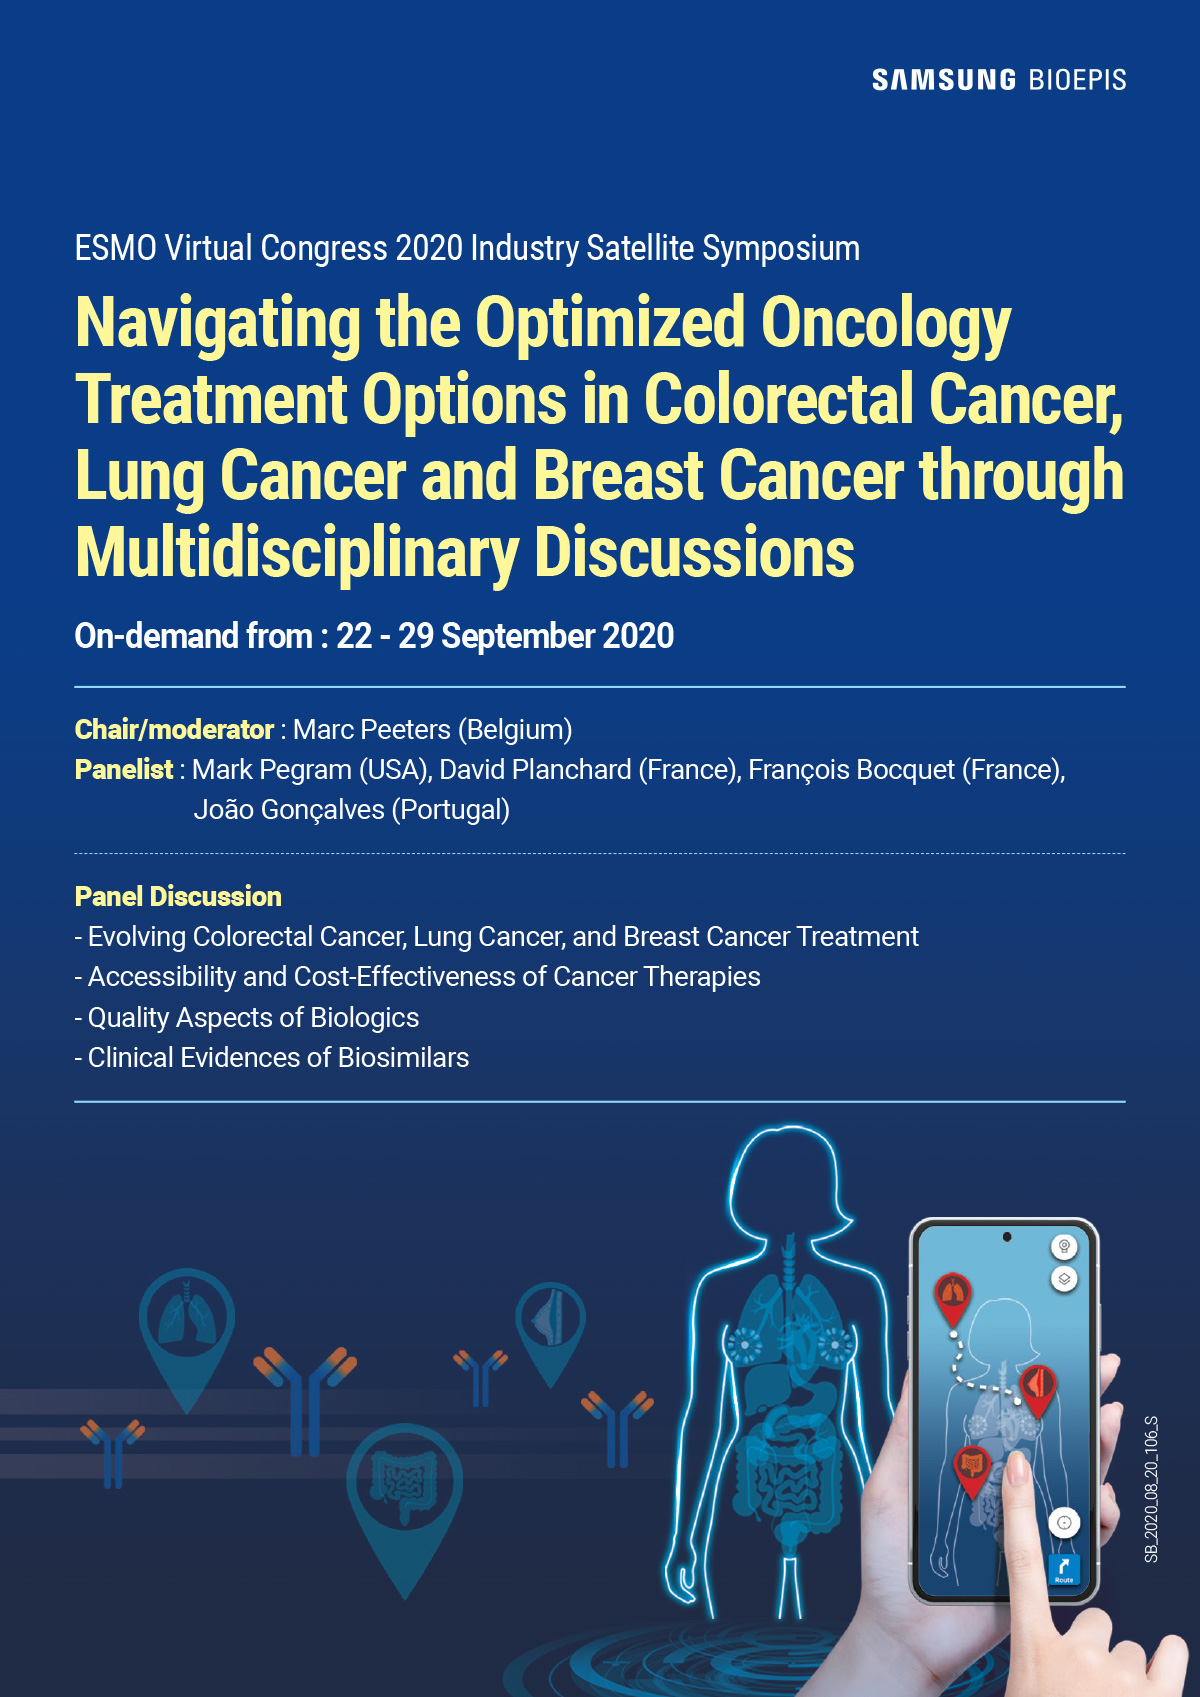 Navigating The Optimized Oncology Treatment Options In Colorectal Cancer Lung Cancer And Breast Cancer Through Multidisciplinary Discussions Esmo